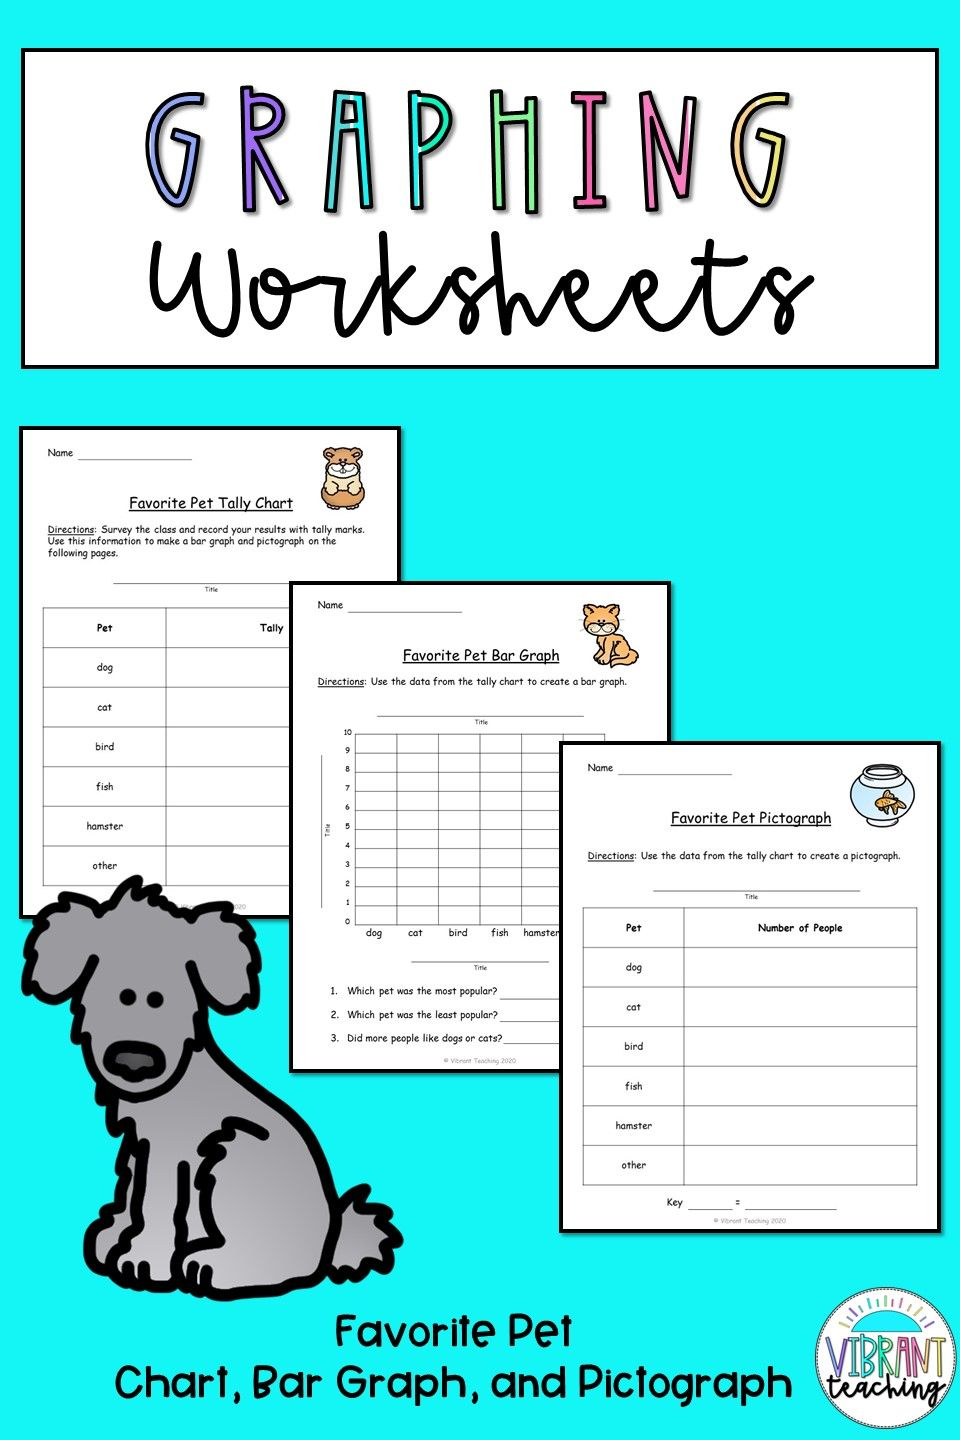 Graphing Worksheets: Favorite Pet   Graphing worksheets [ 1440 x 960 Pixel ]